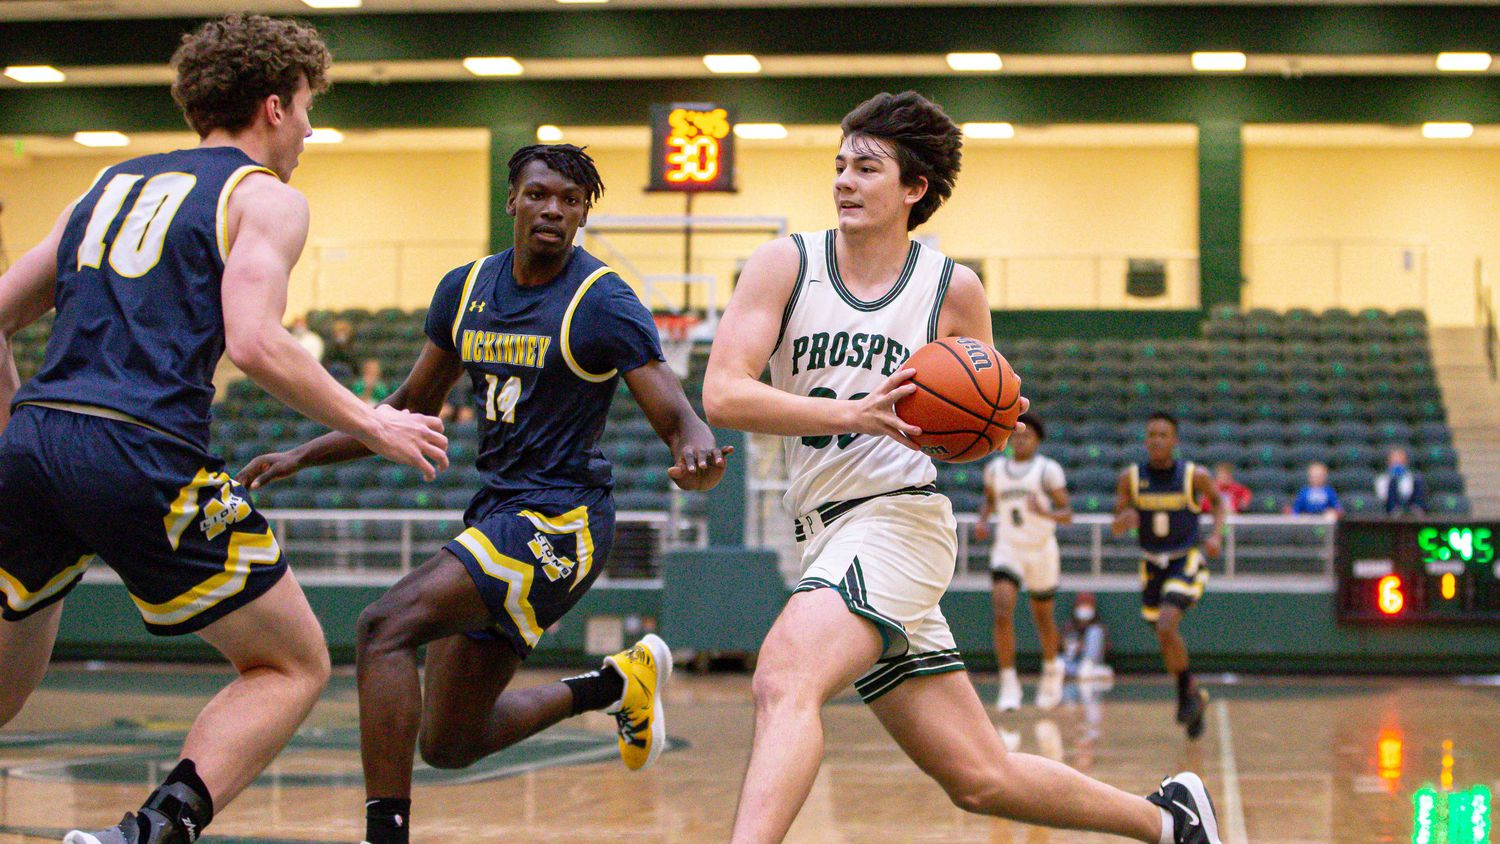 Prosper's Luke Chaney #23 goes for a point against McKinney High School during boys basketball game in Prosper on Tuesday, December 22, 2020.